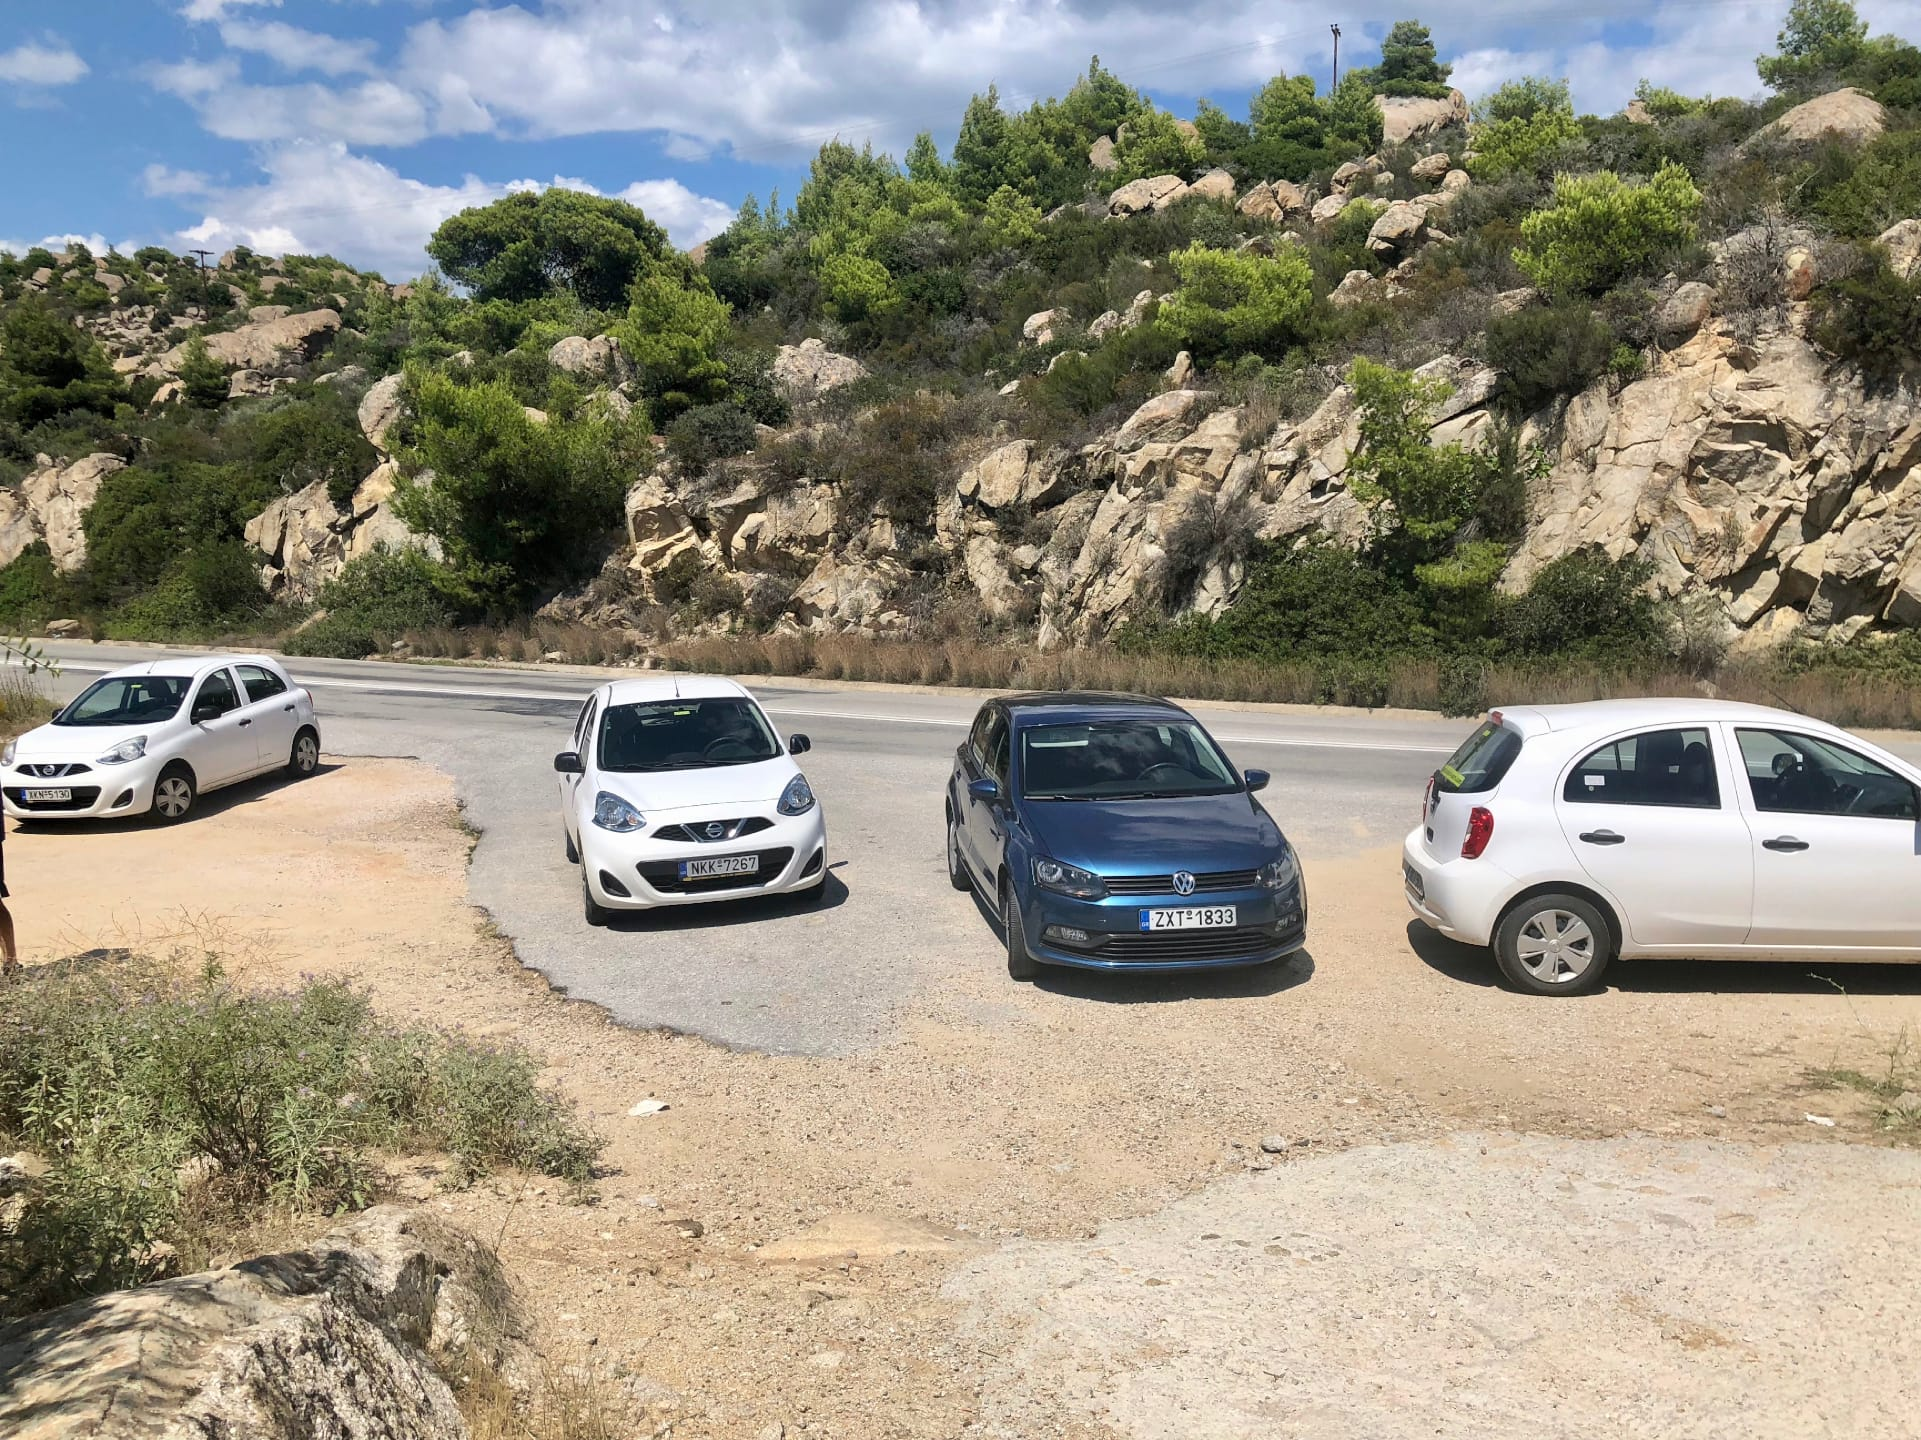 Rent a car in Greece